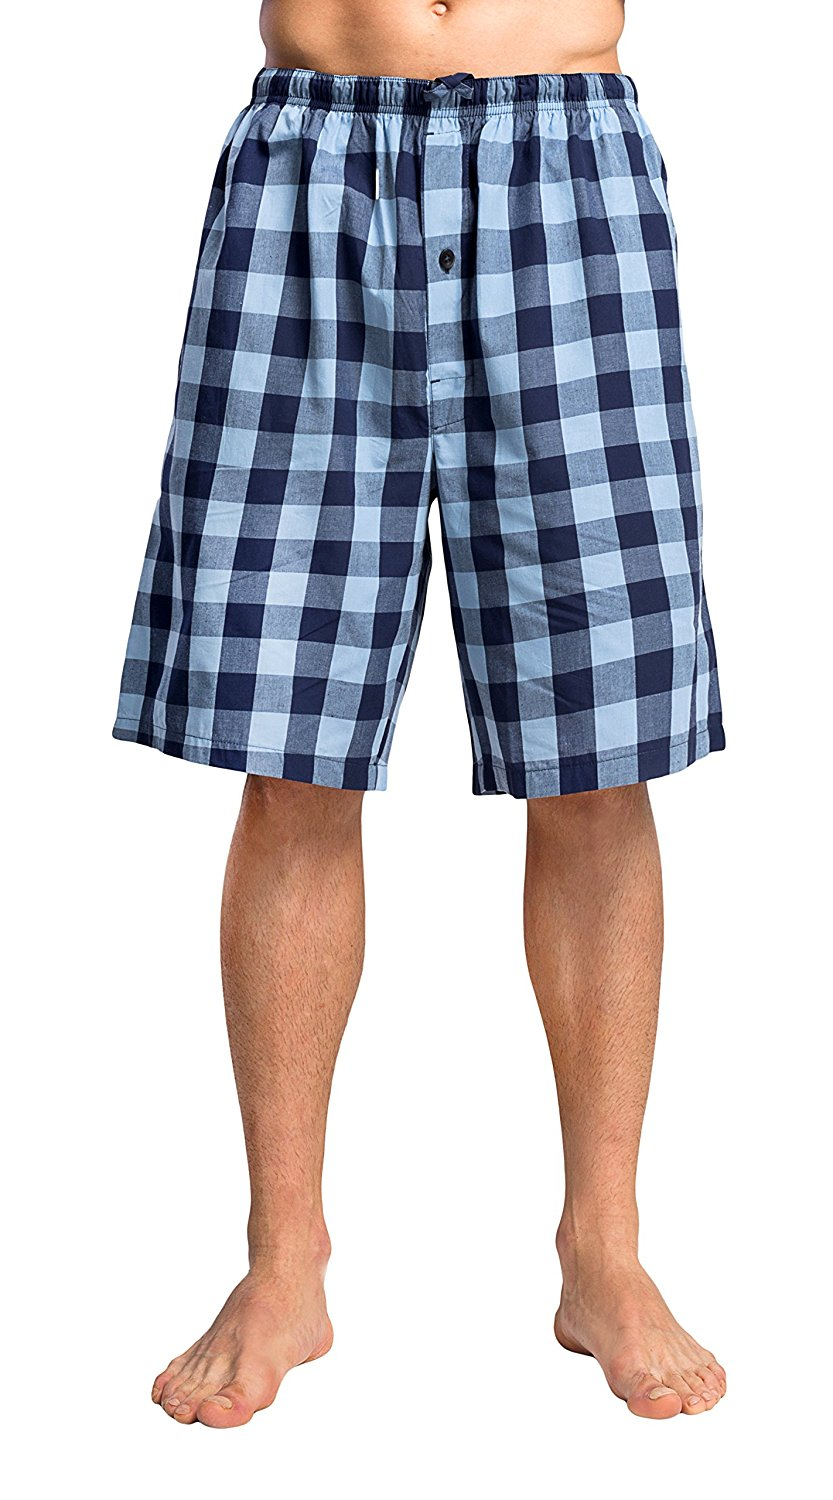 CYZ Men's 100% Cotton Plaid Woven Pajama Shorts Lounge Shorts Sleep Shorts